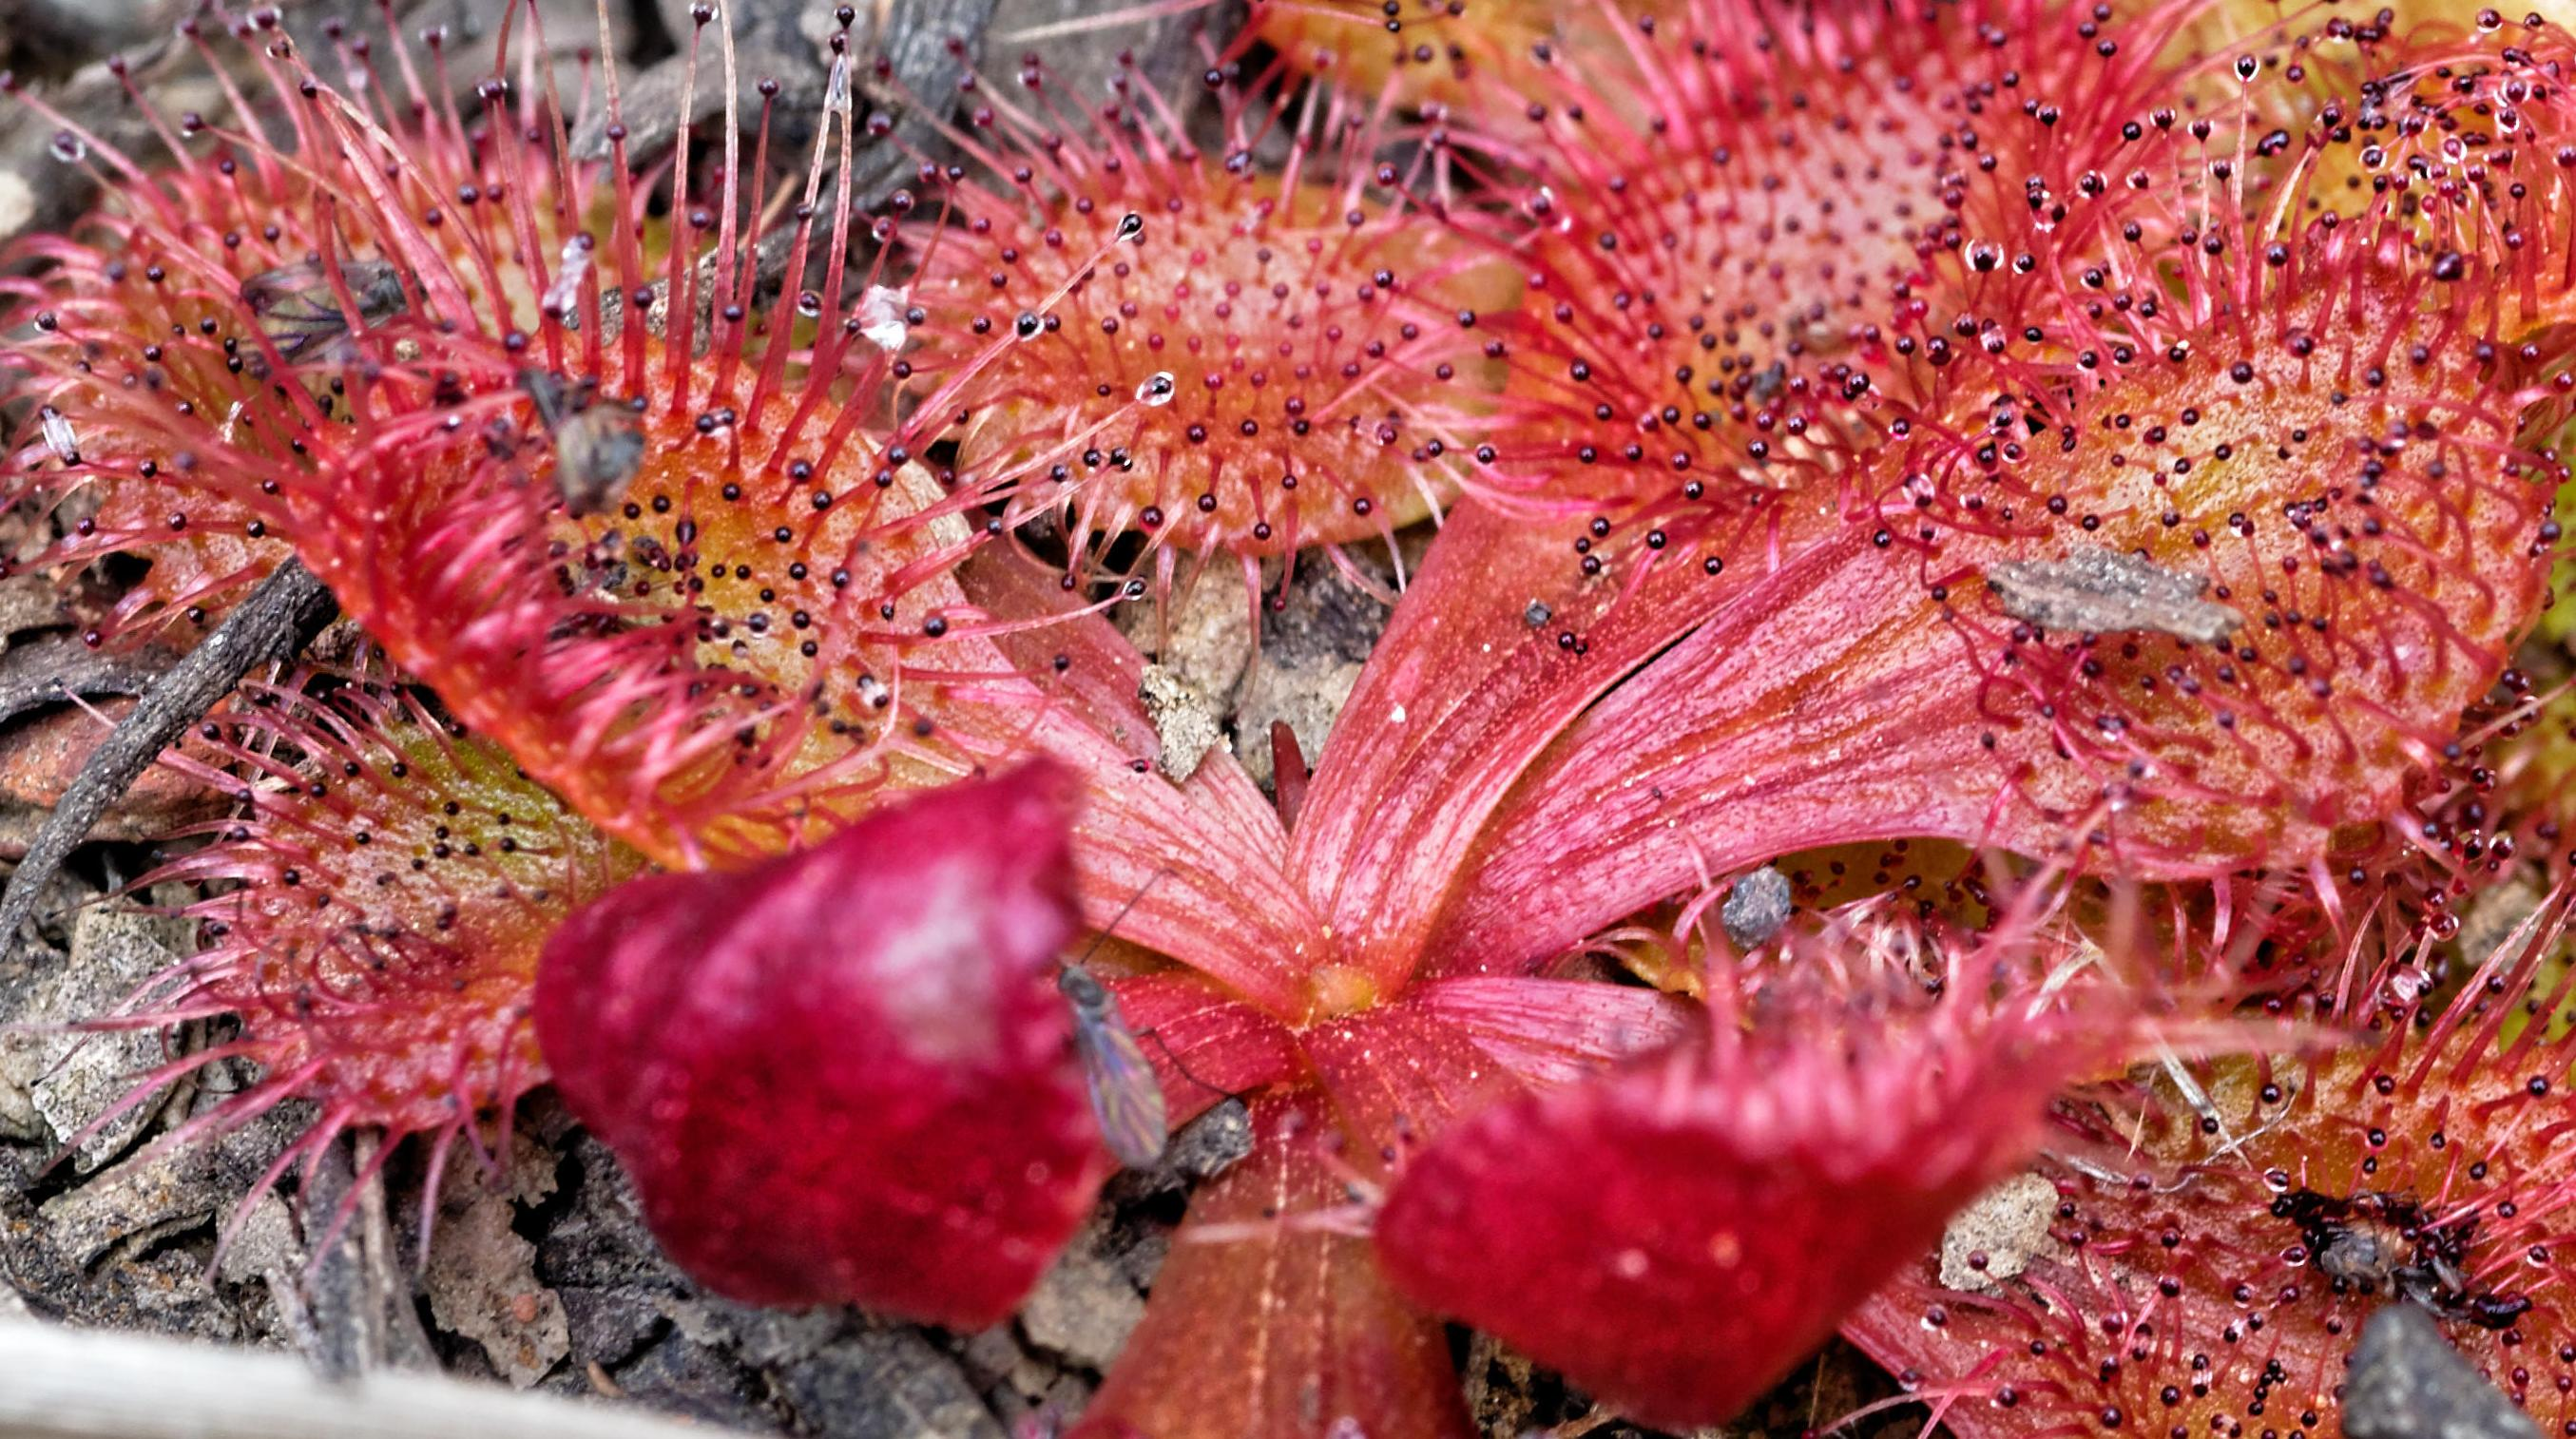 Drosera-4-detail.jpeg